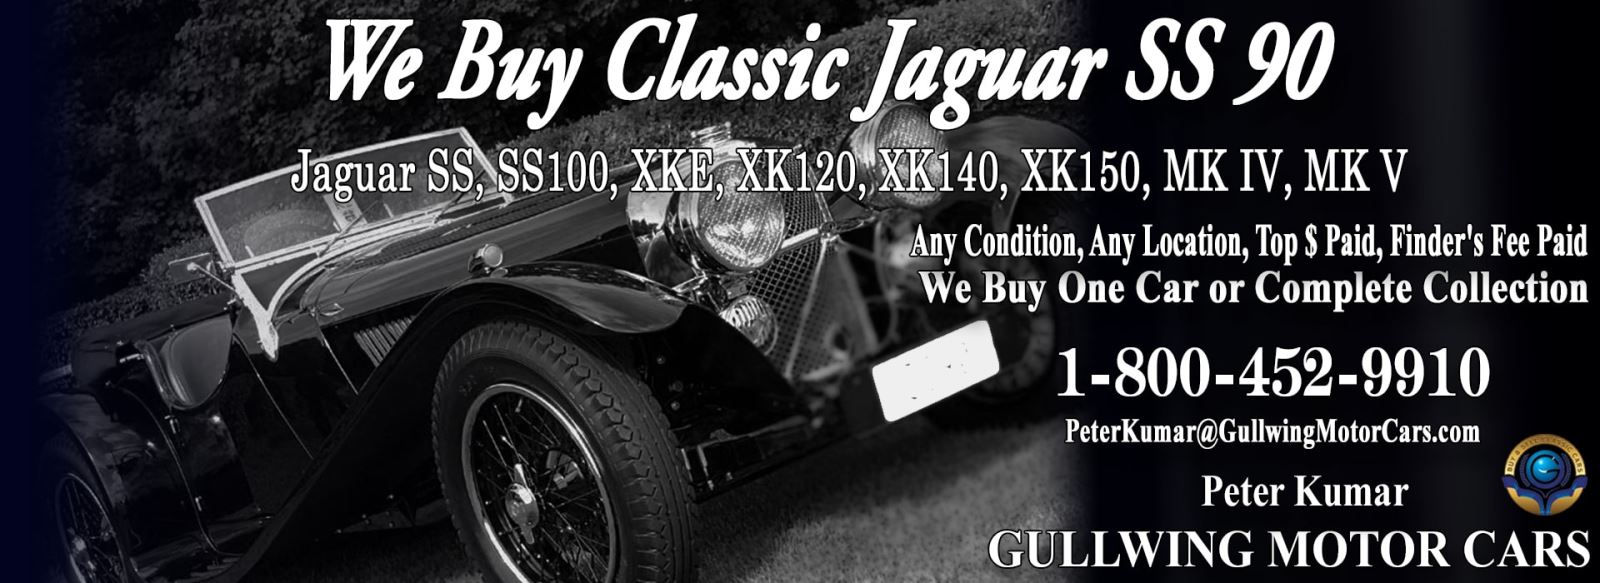 Classic Jaguar for sale, we buy vintage Jaguar SS90. Call Peter Kumar. Gullwing Motor